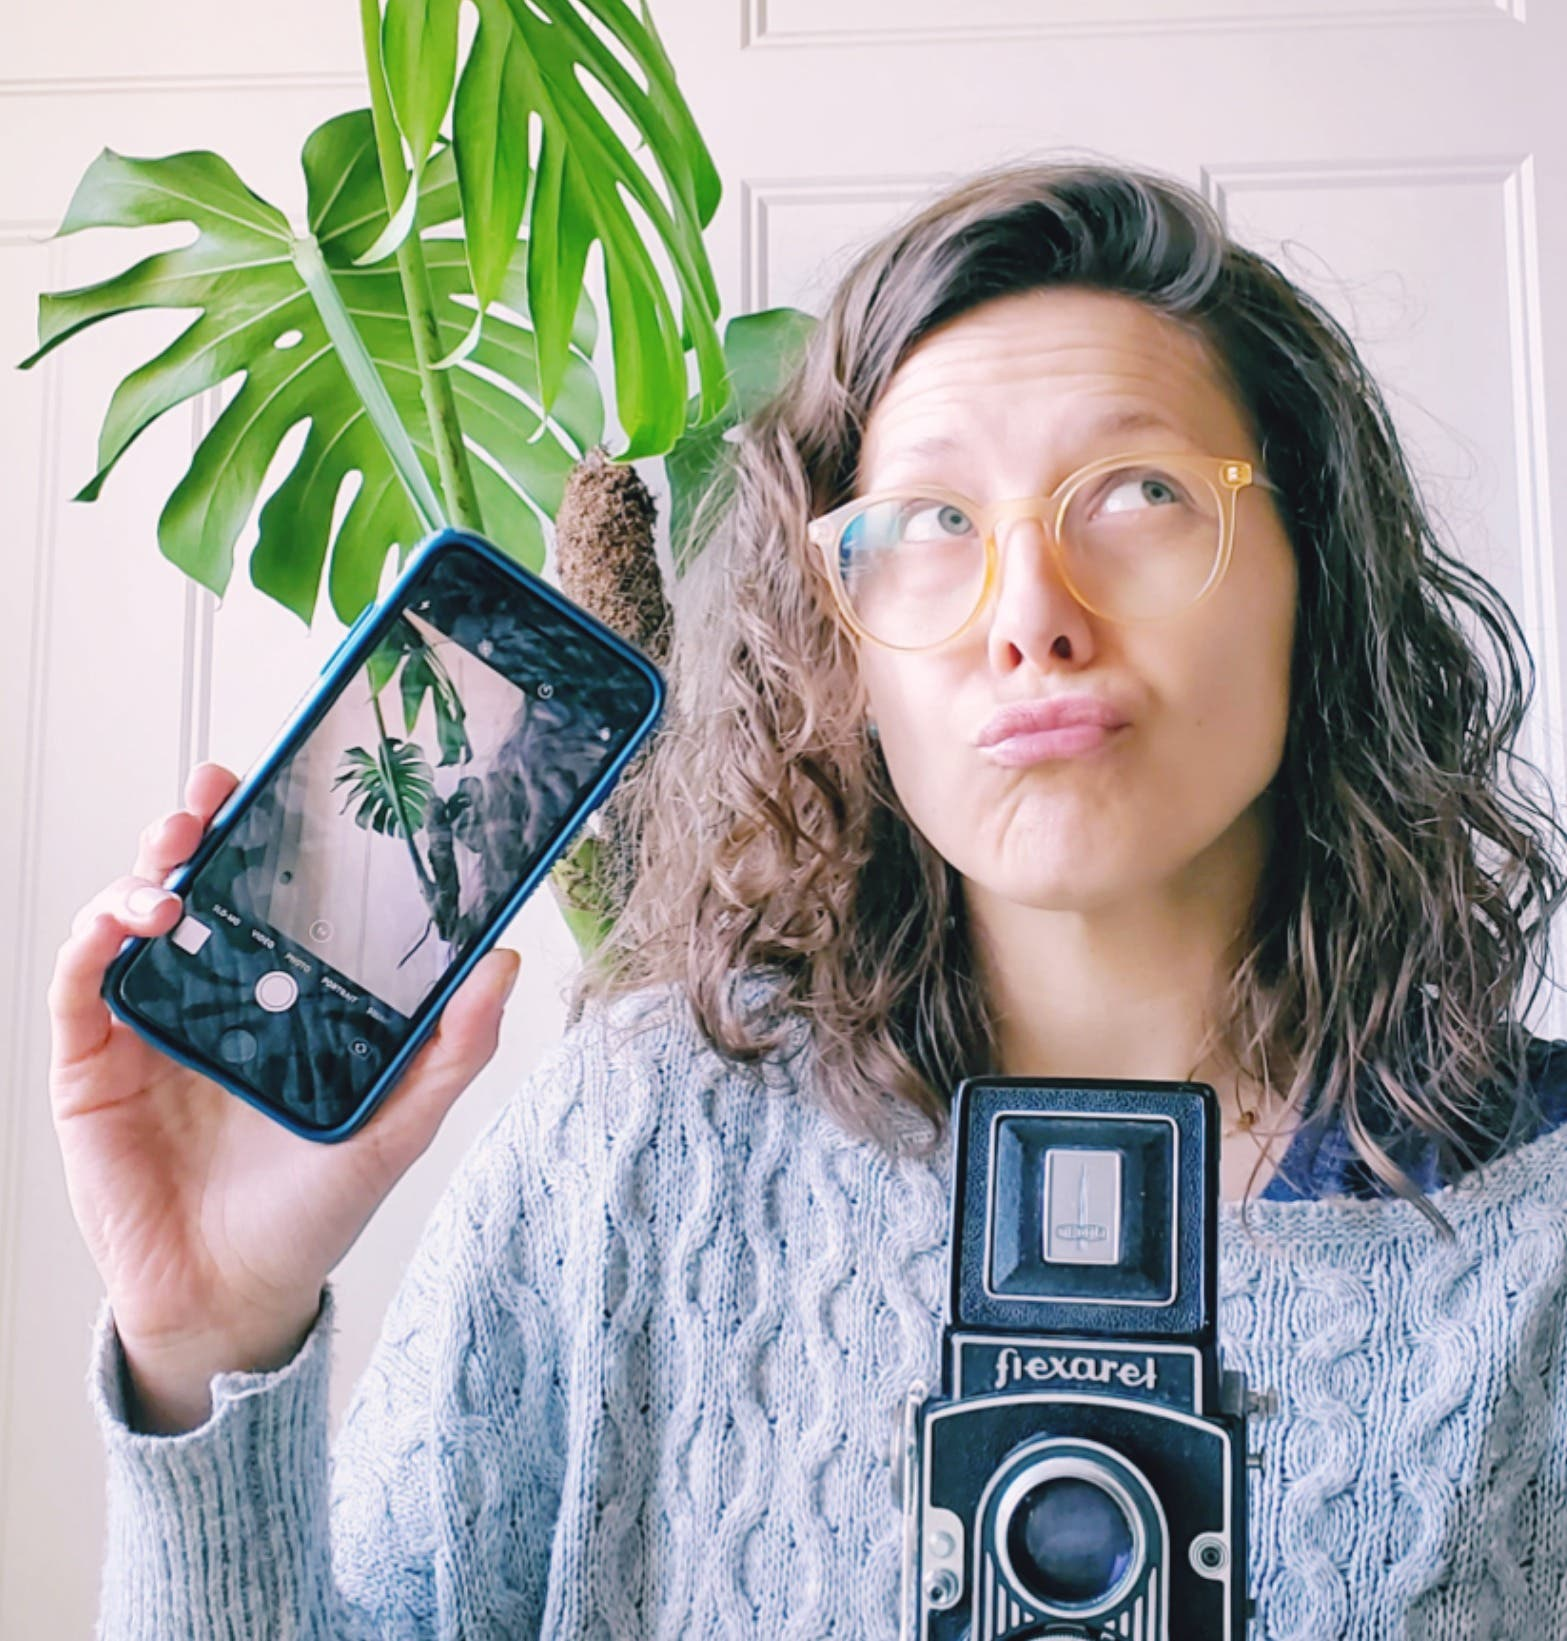 Andie Solar holding a cell phone camera in one hand and a Twin Lens Reflex film camera in the other hand.